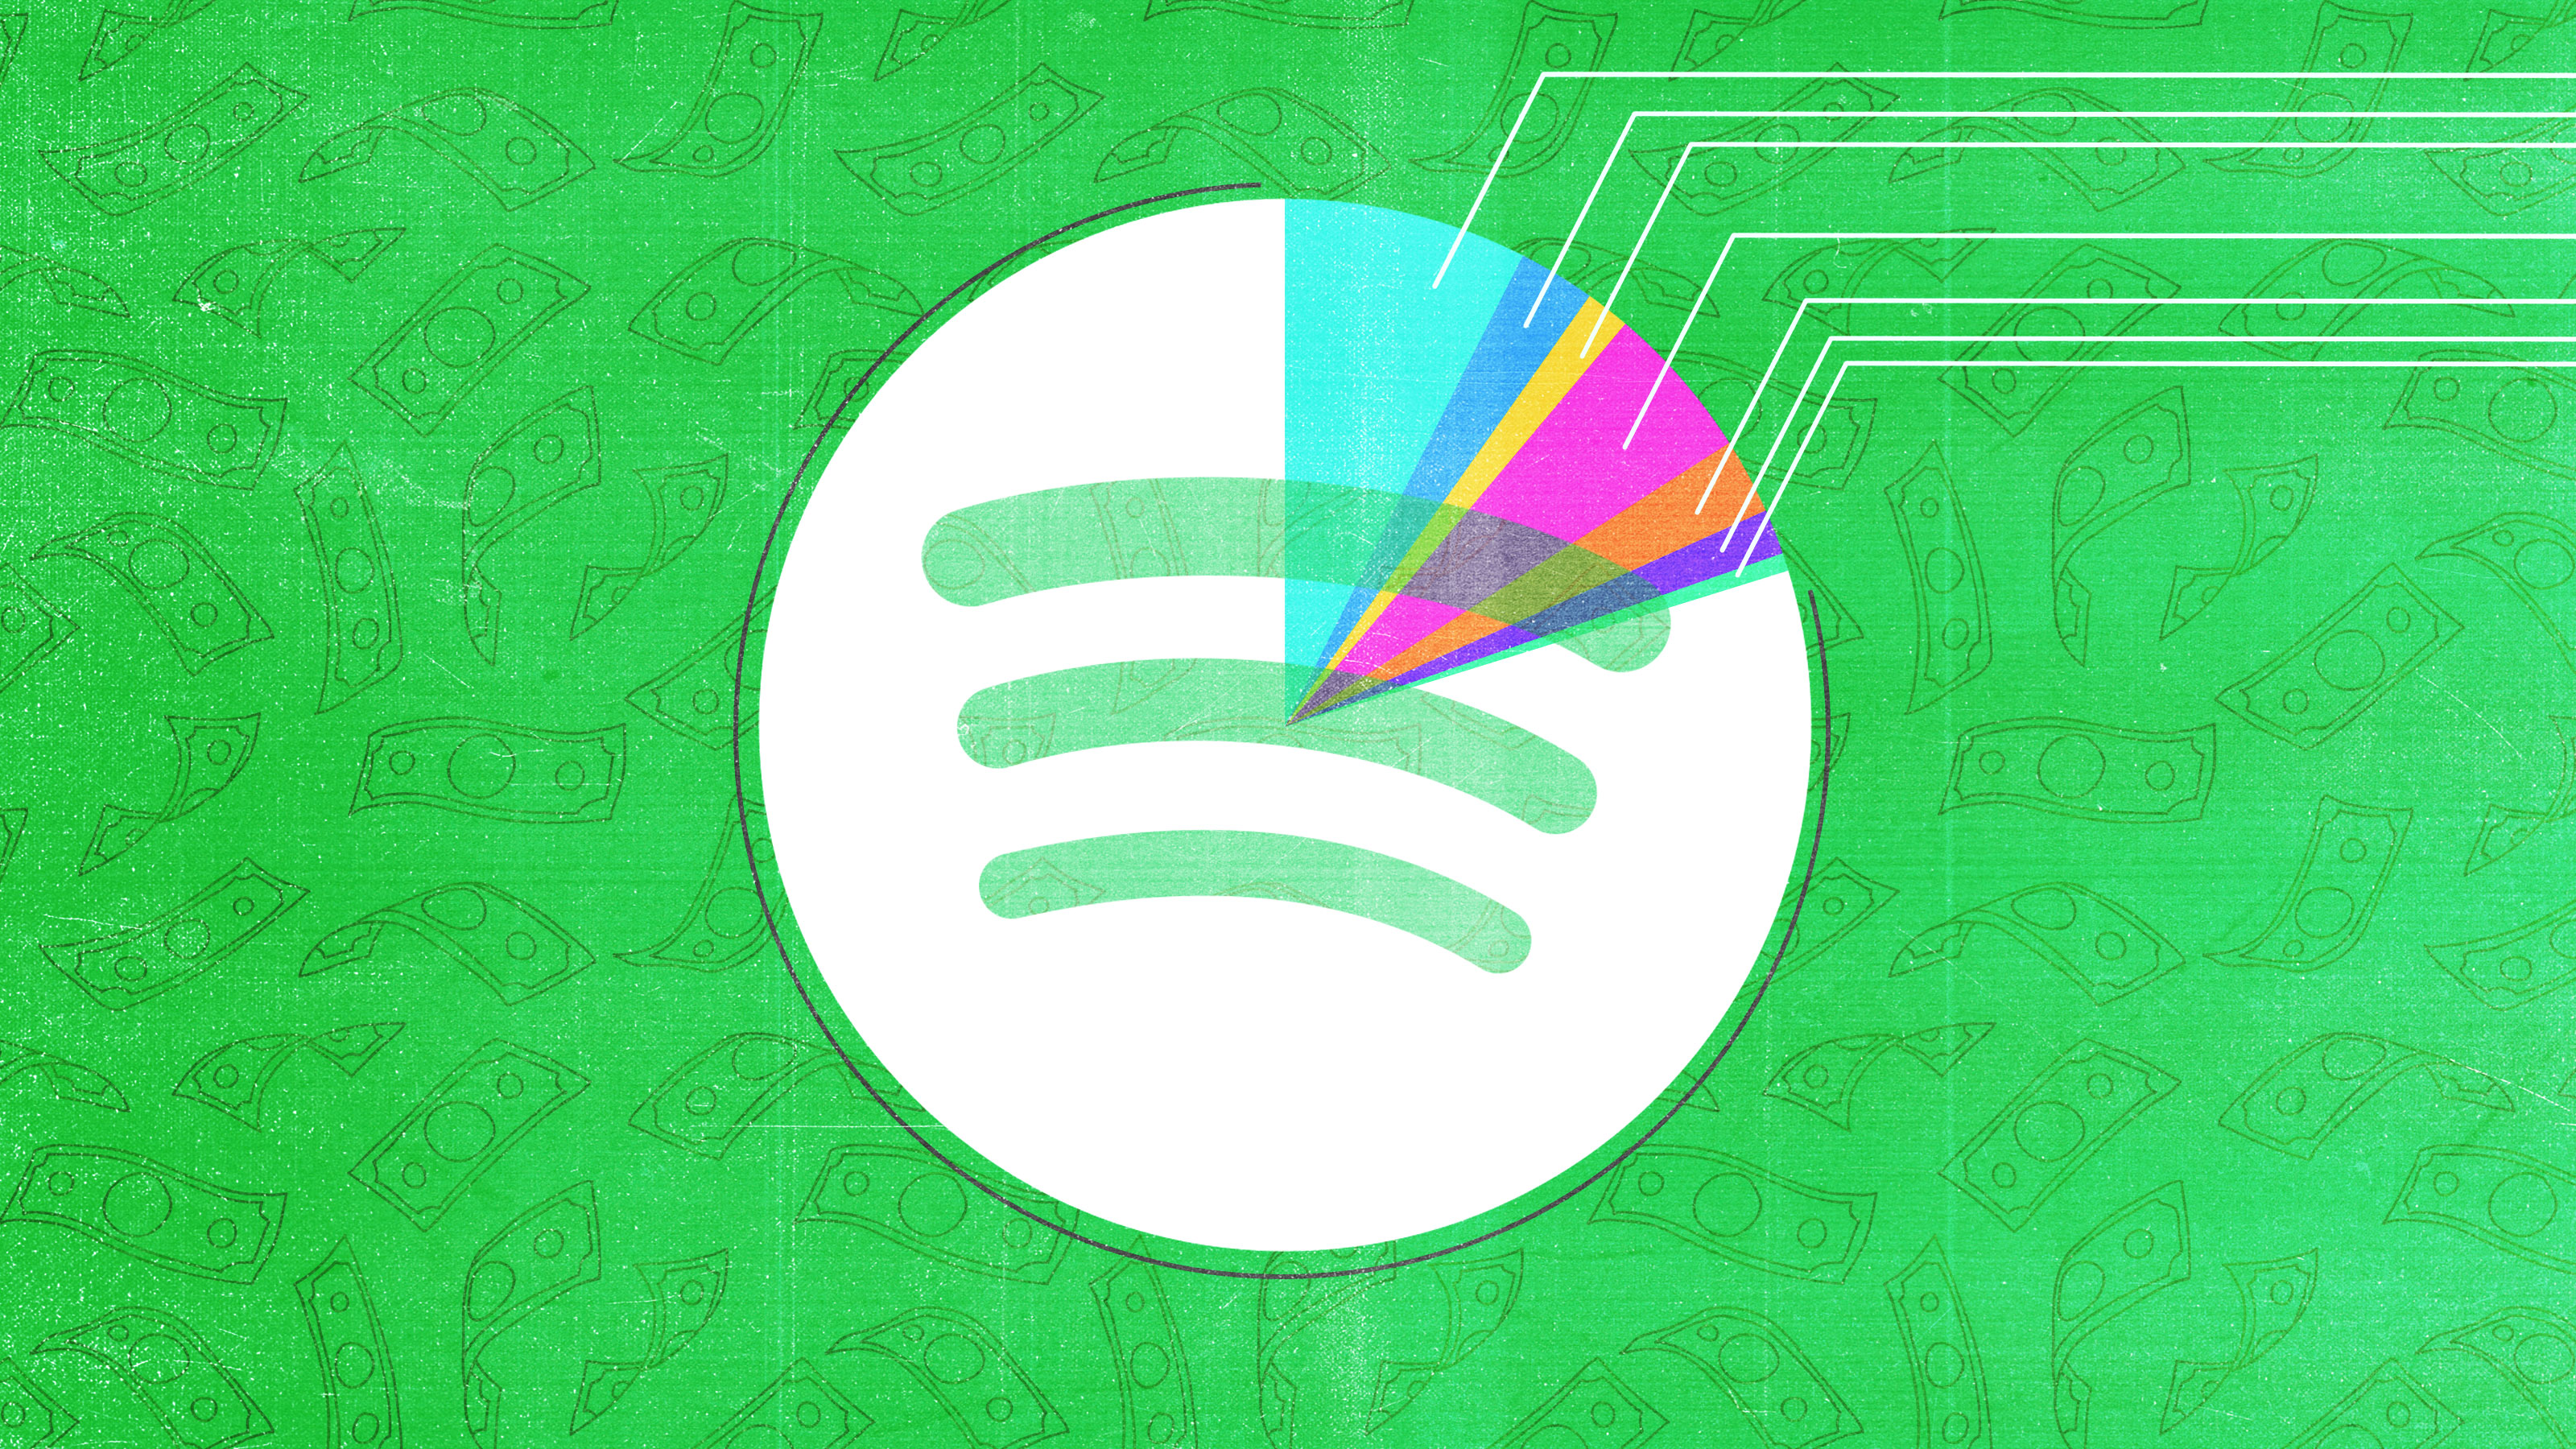 Is Spotify's Model Wiping Out Music's Middle Class? - The Ringer